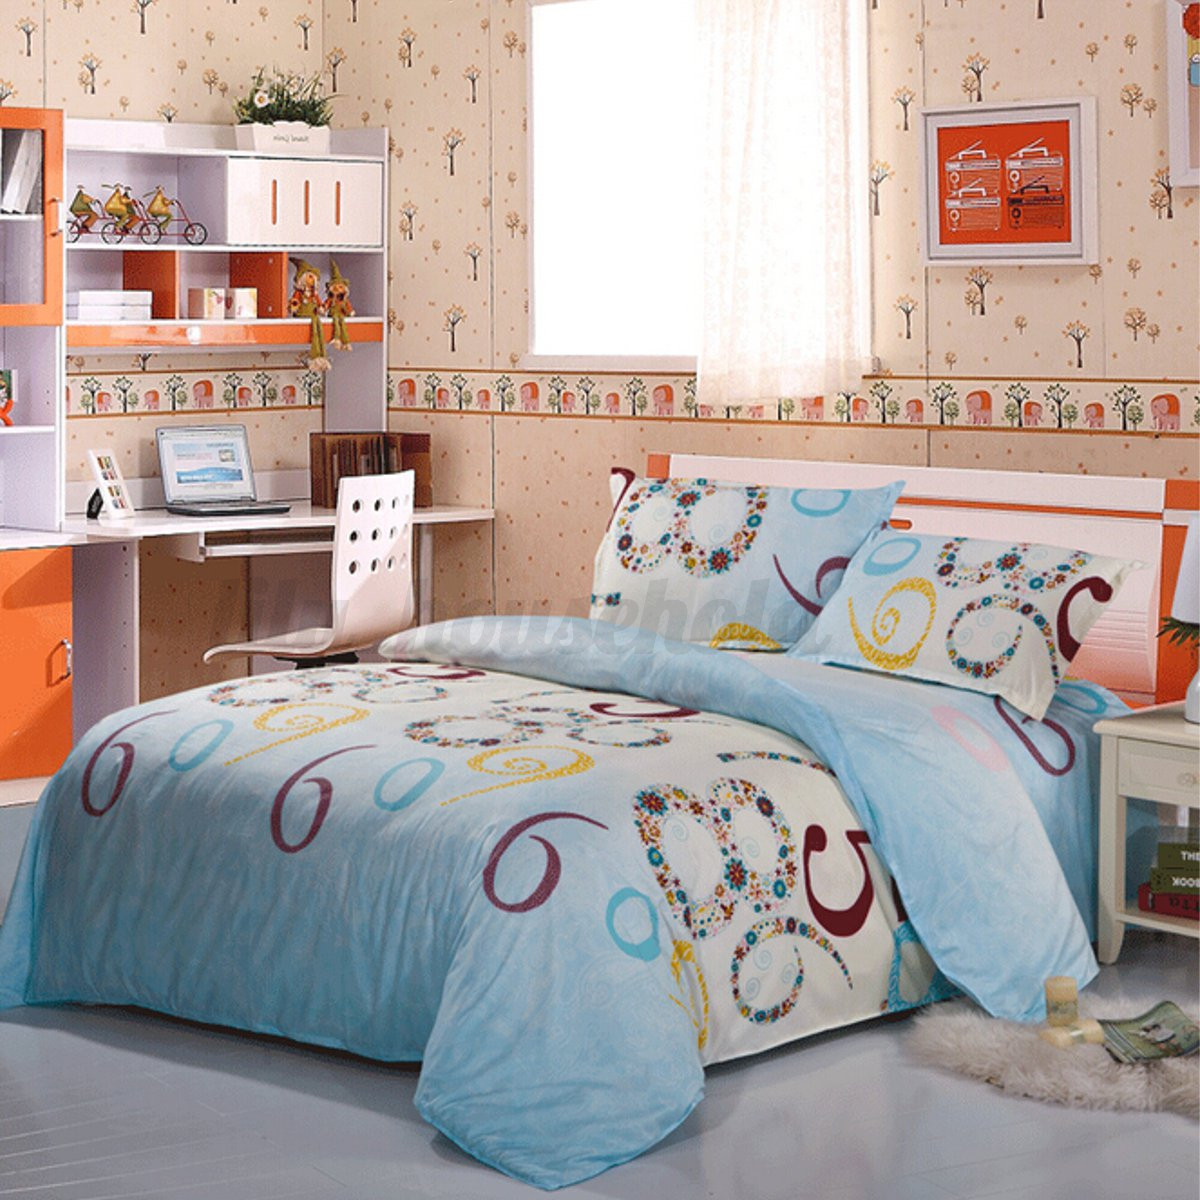 3 4 tlg bettw sche bettgarnitur baumwolle kissen decke 150 x 200 200 x 230cm ebay. Black Bedroom Furniture Sets. Home Design Ideas